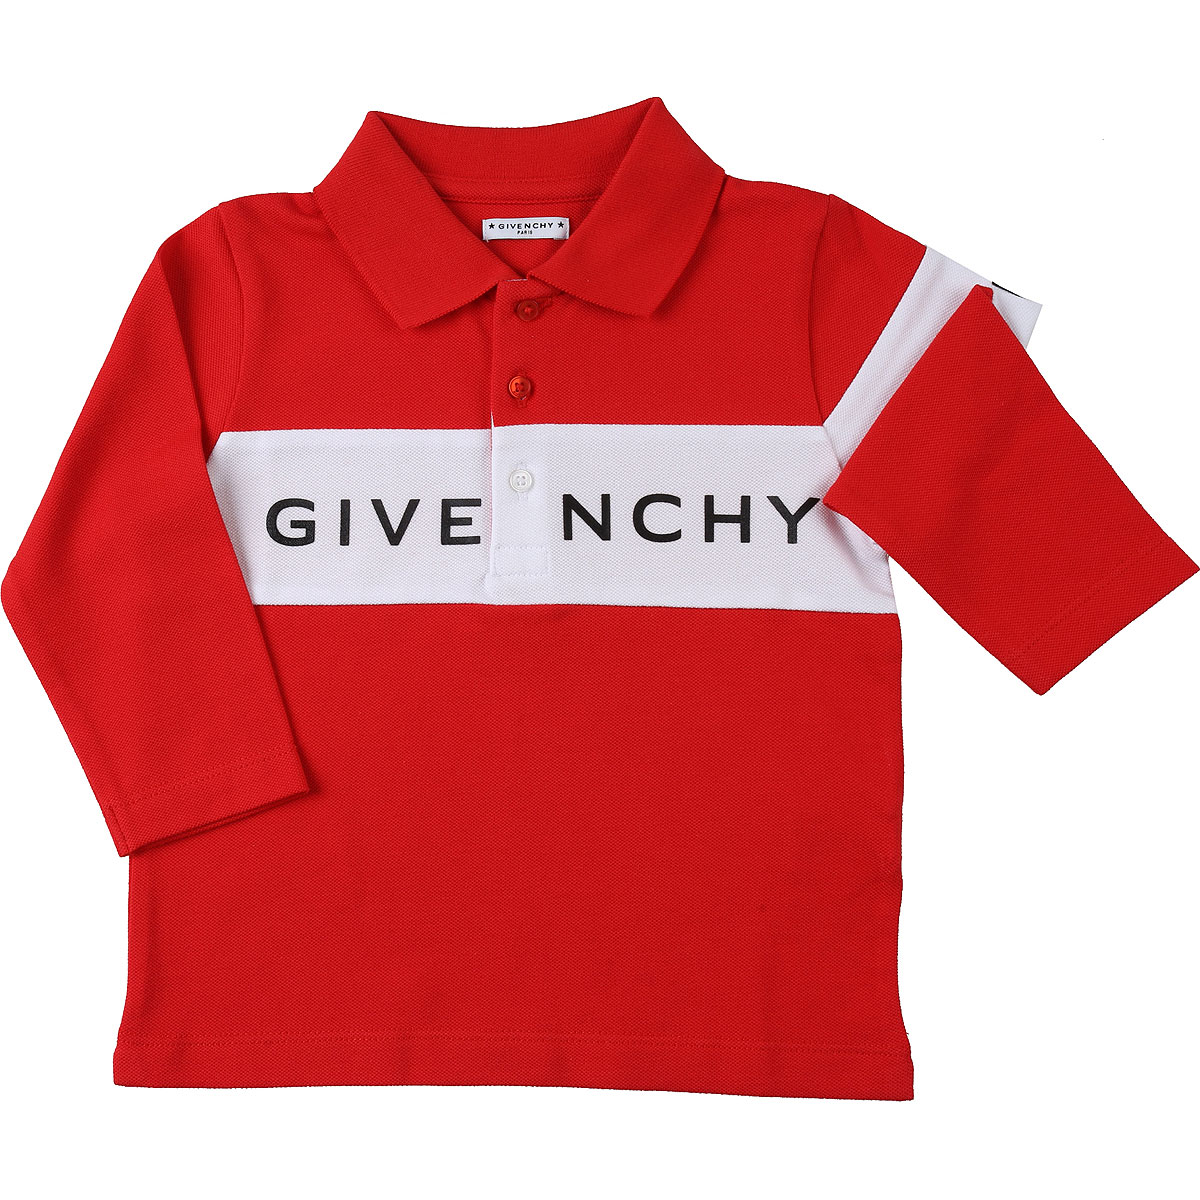 Givenchy Baby Polo Shirt for Boys On Sale, Red, Cotton, 2019, 12 M 18M 2Y 3Y 9 M